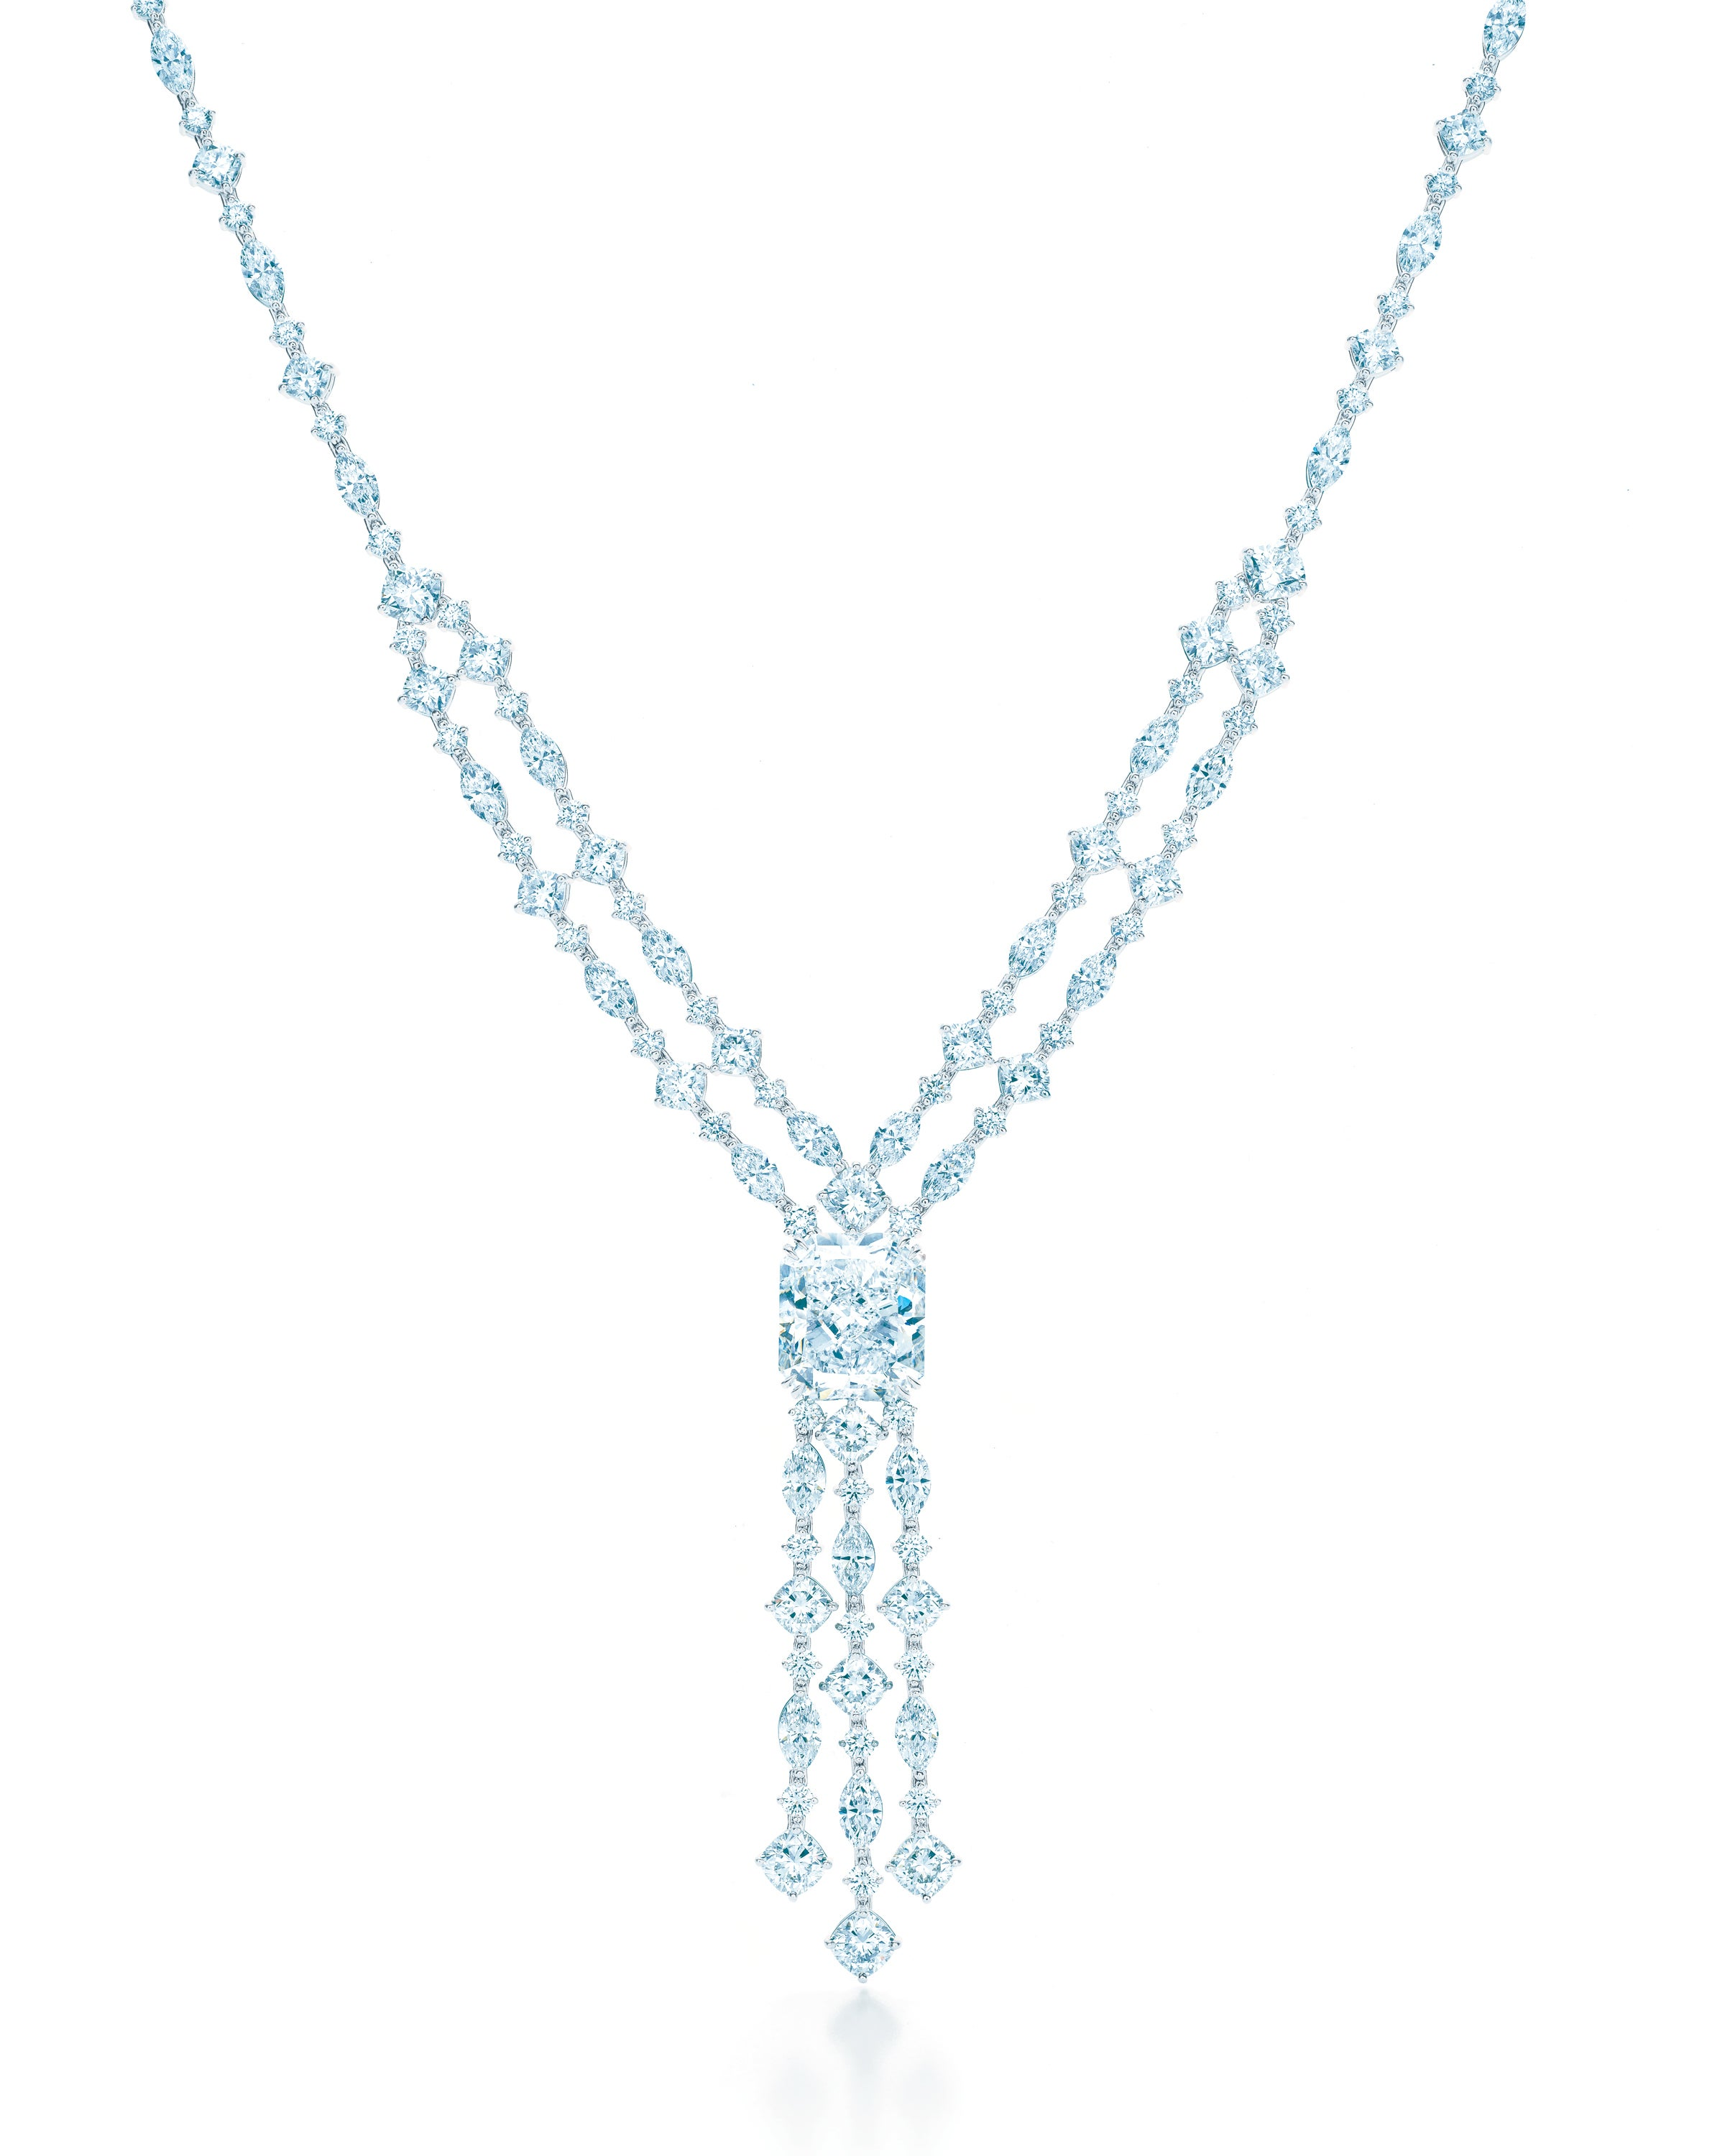 diamond listings necklaces chain tiffany necklace important co link pendants riviere jewelry watches and